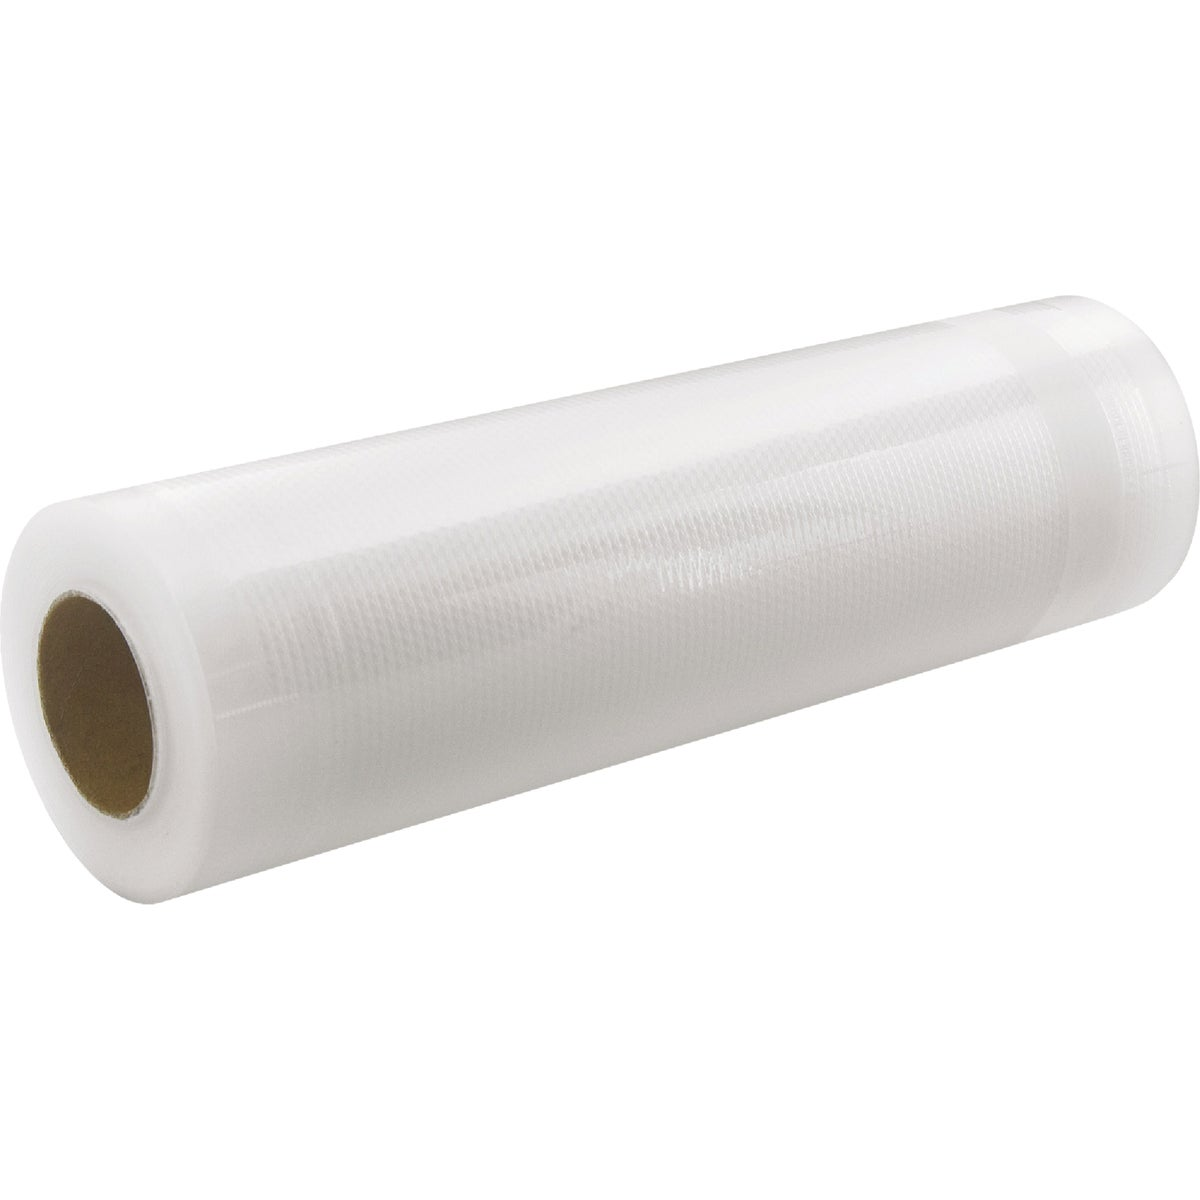 "8"" FOODSAVER SINGLE ROLL"